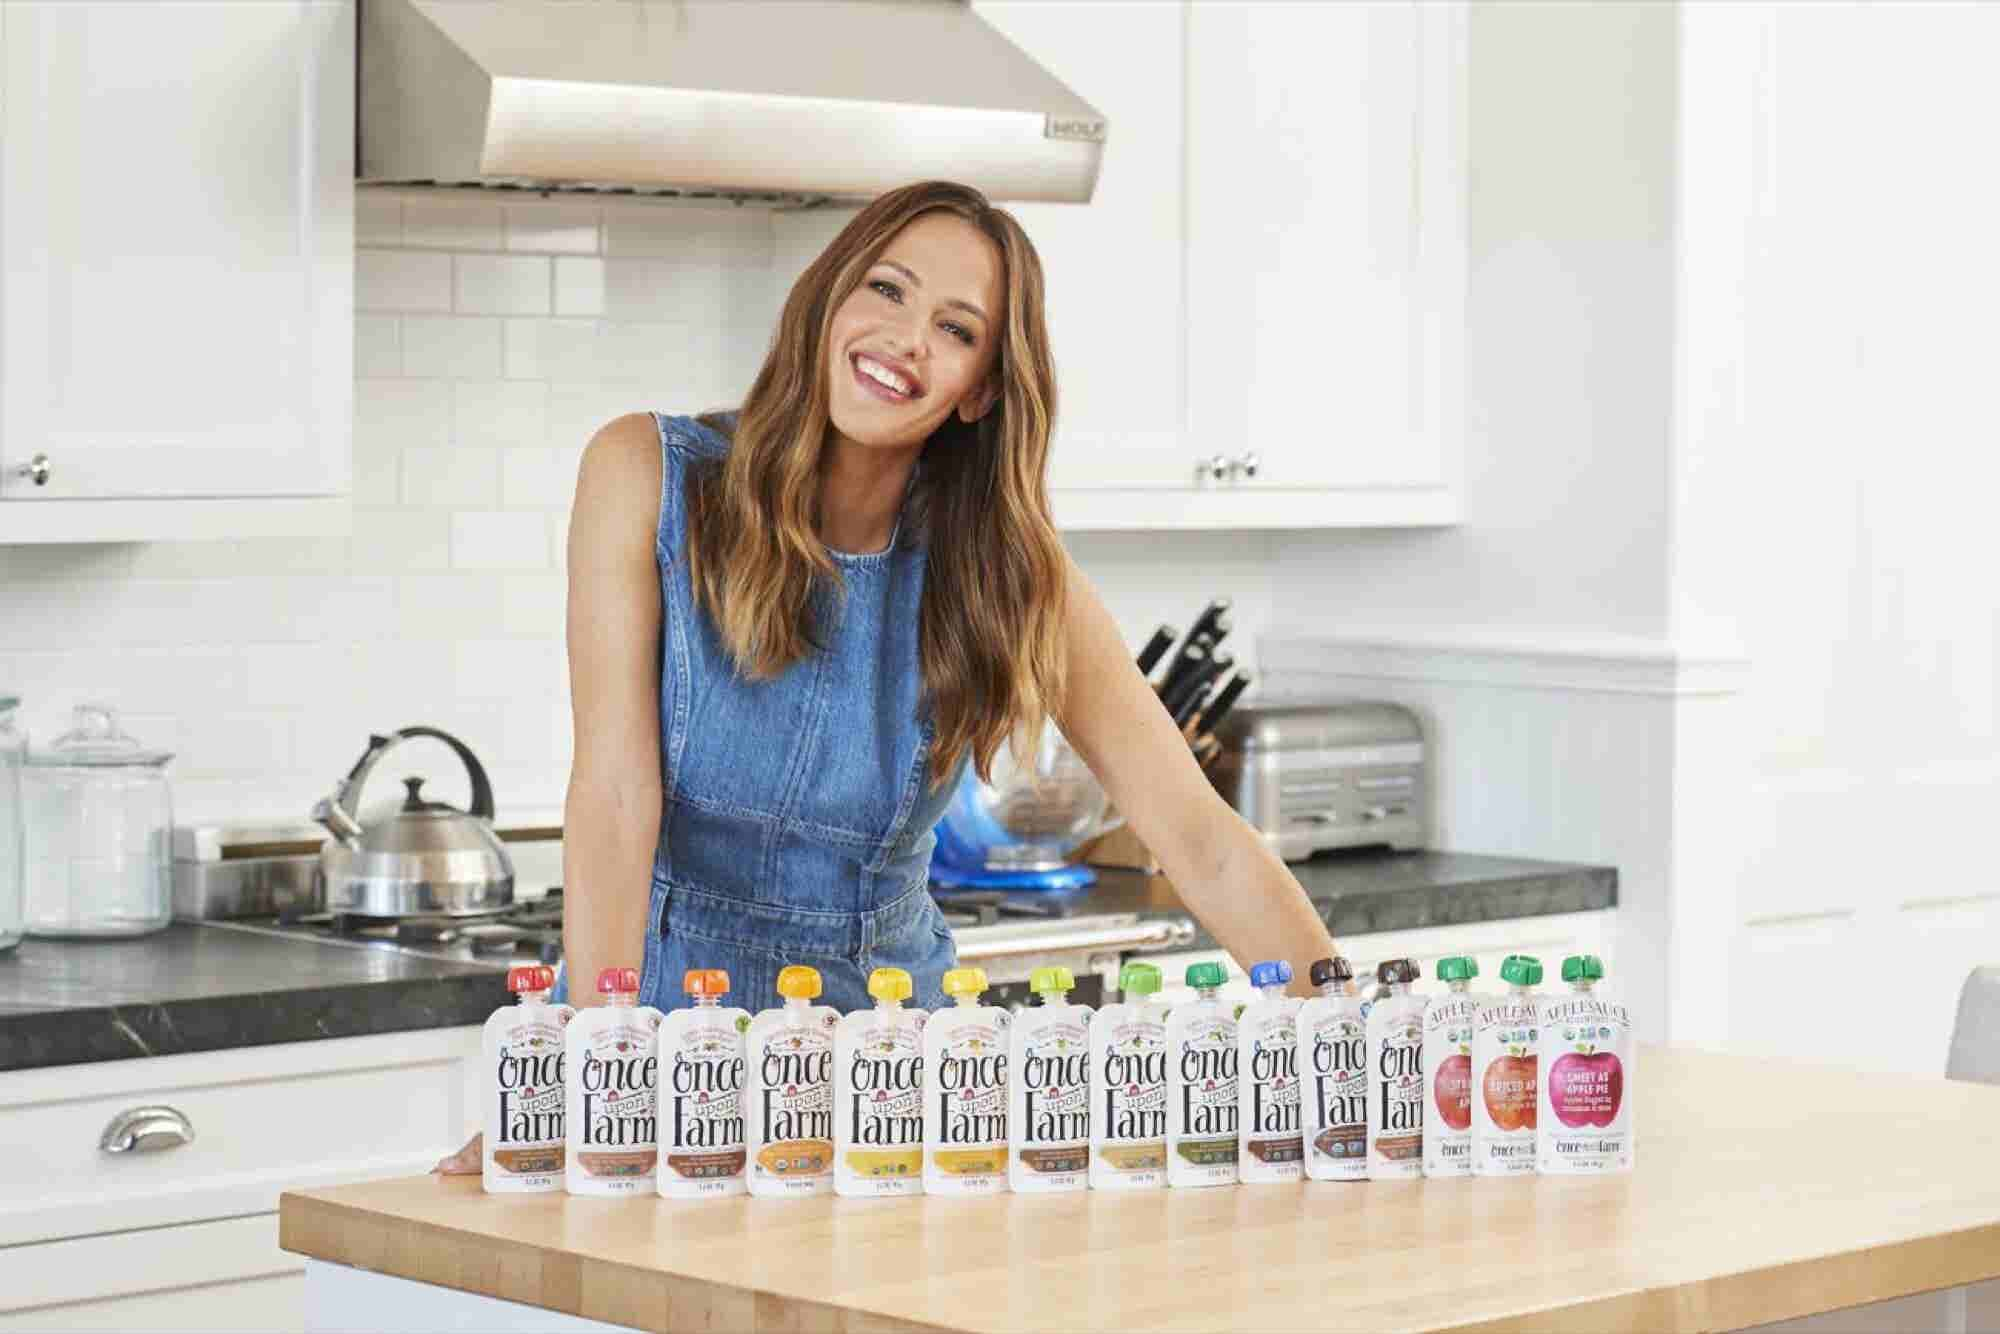 What Motivated Jennifer Garner to Become an Entrepreneur in the Food Space